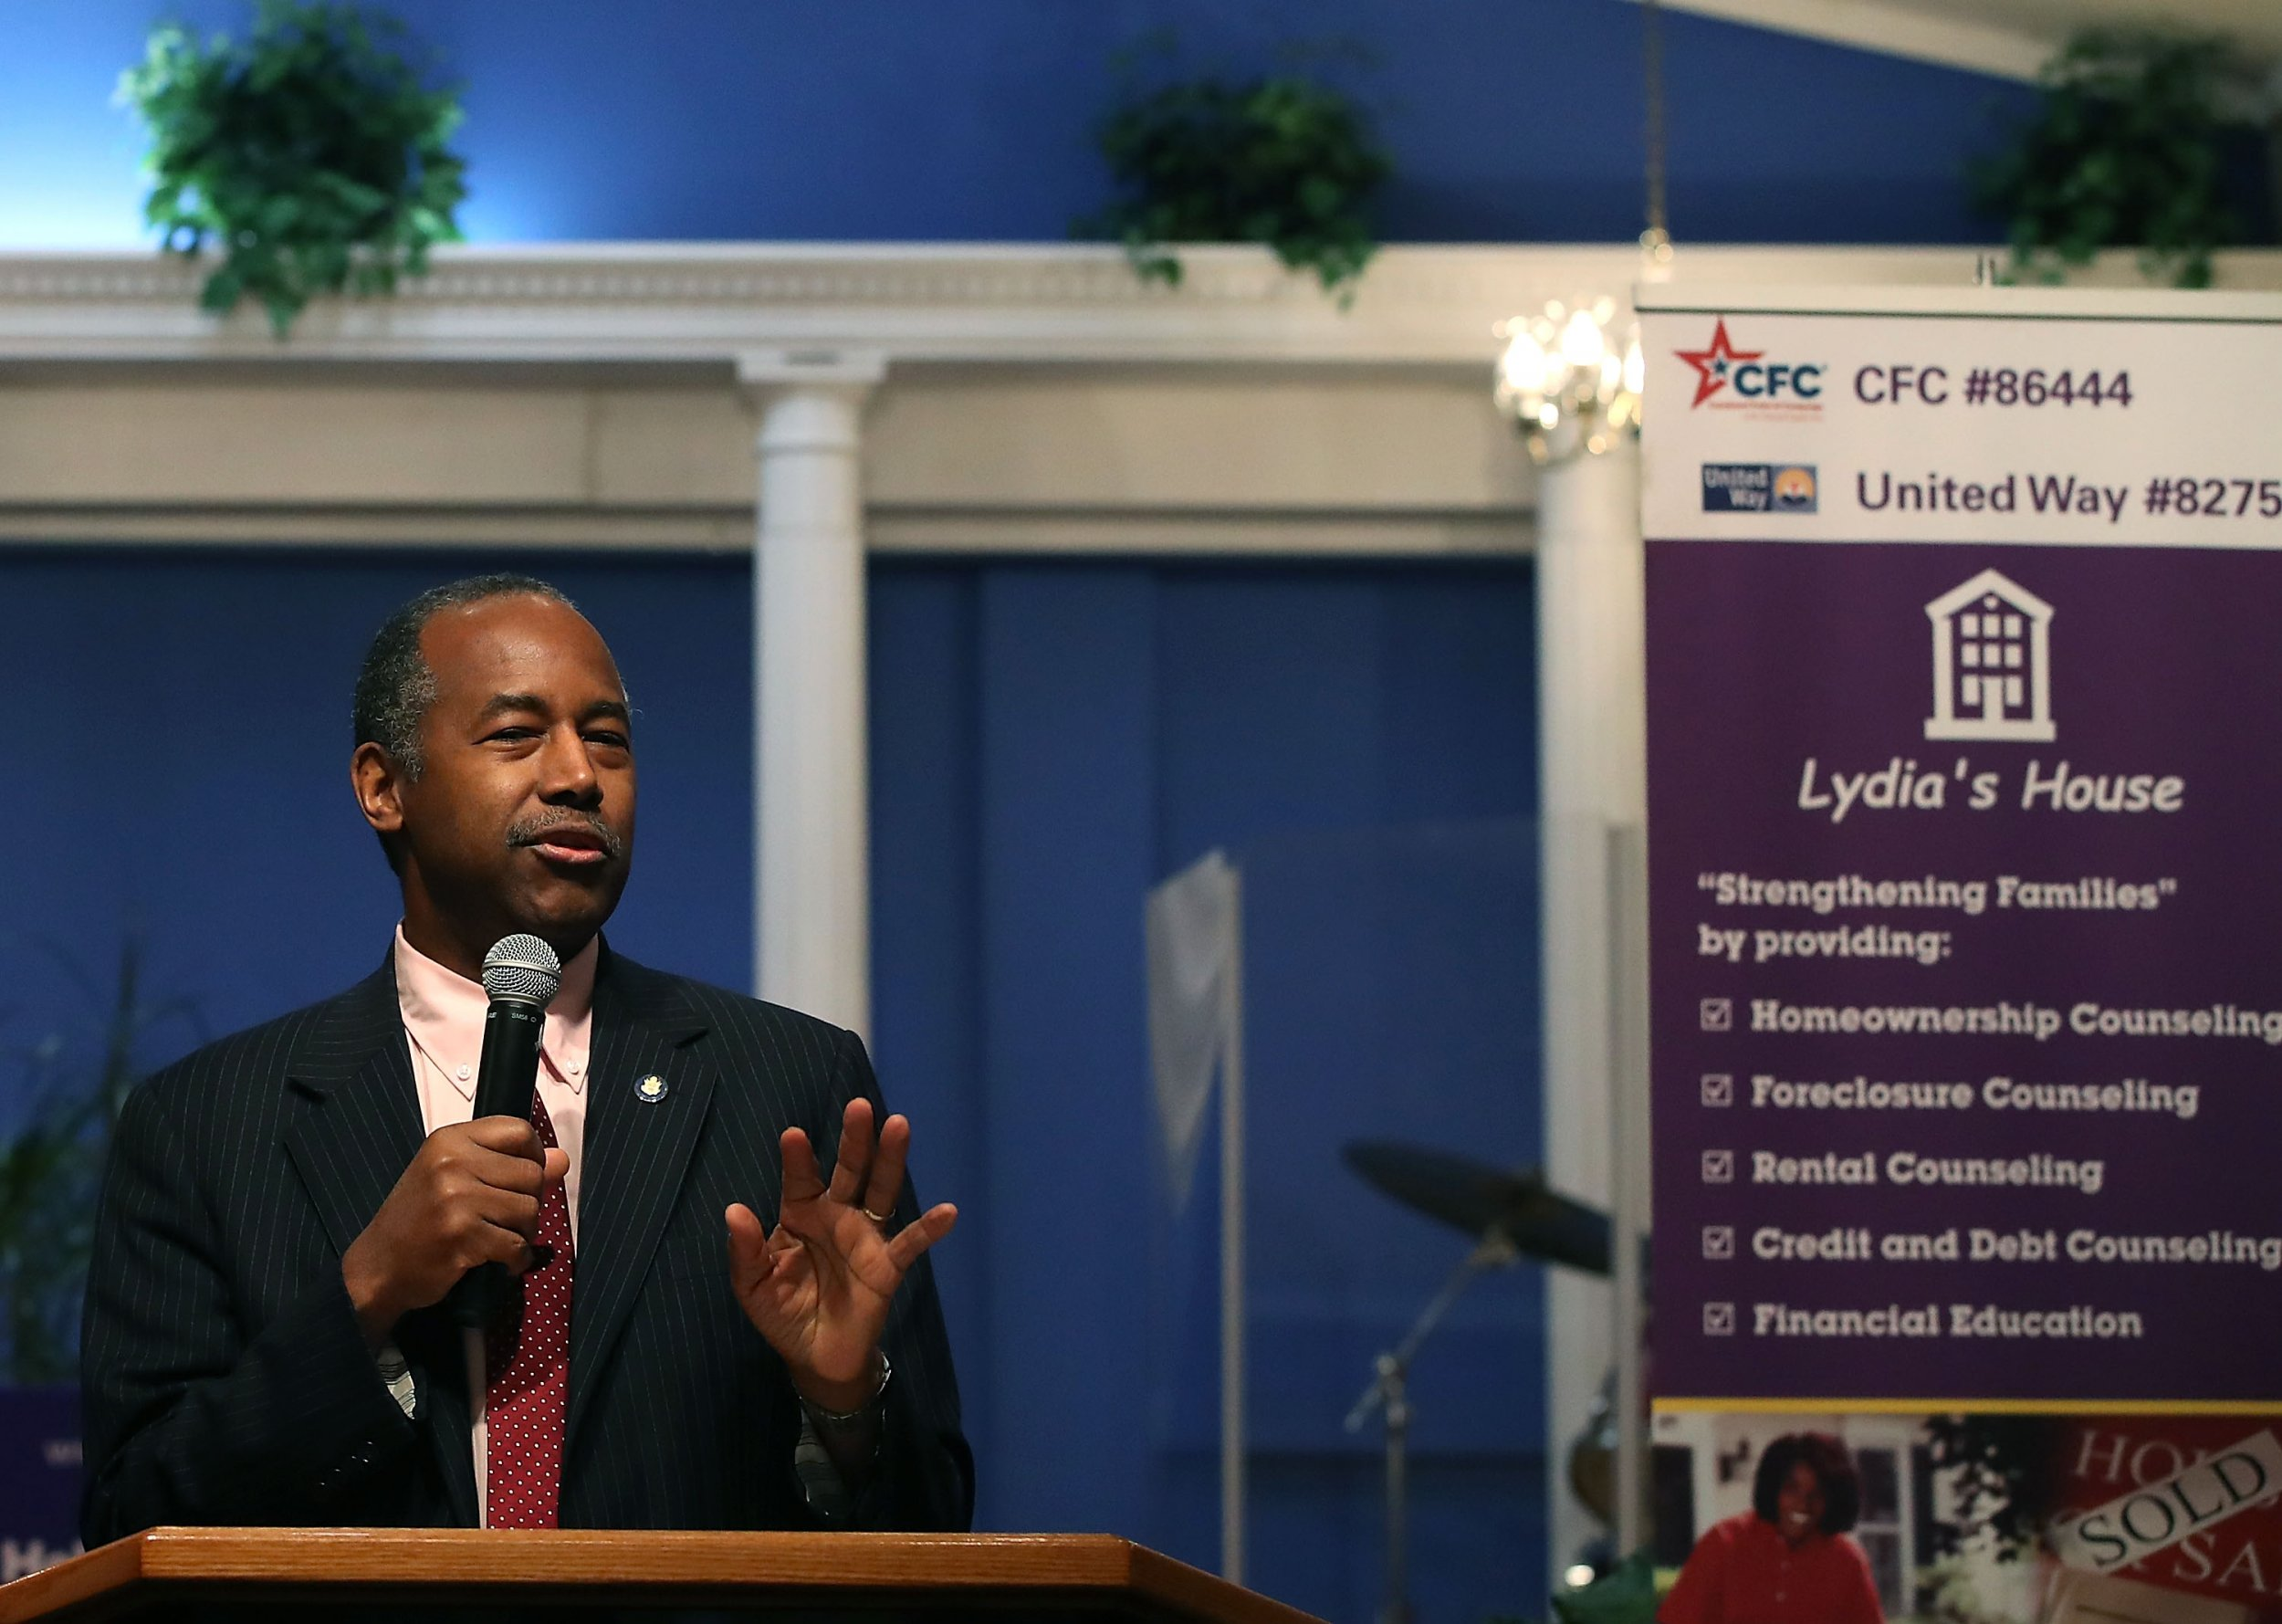 Ben Carson's $31,000 Dining Set Cost More Than 211 HUD Homes for